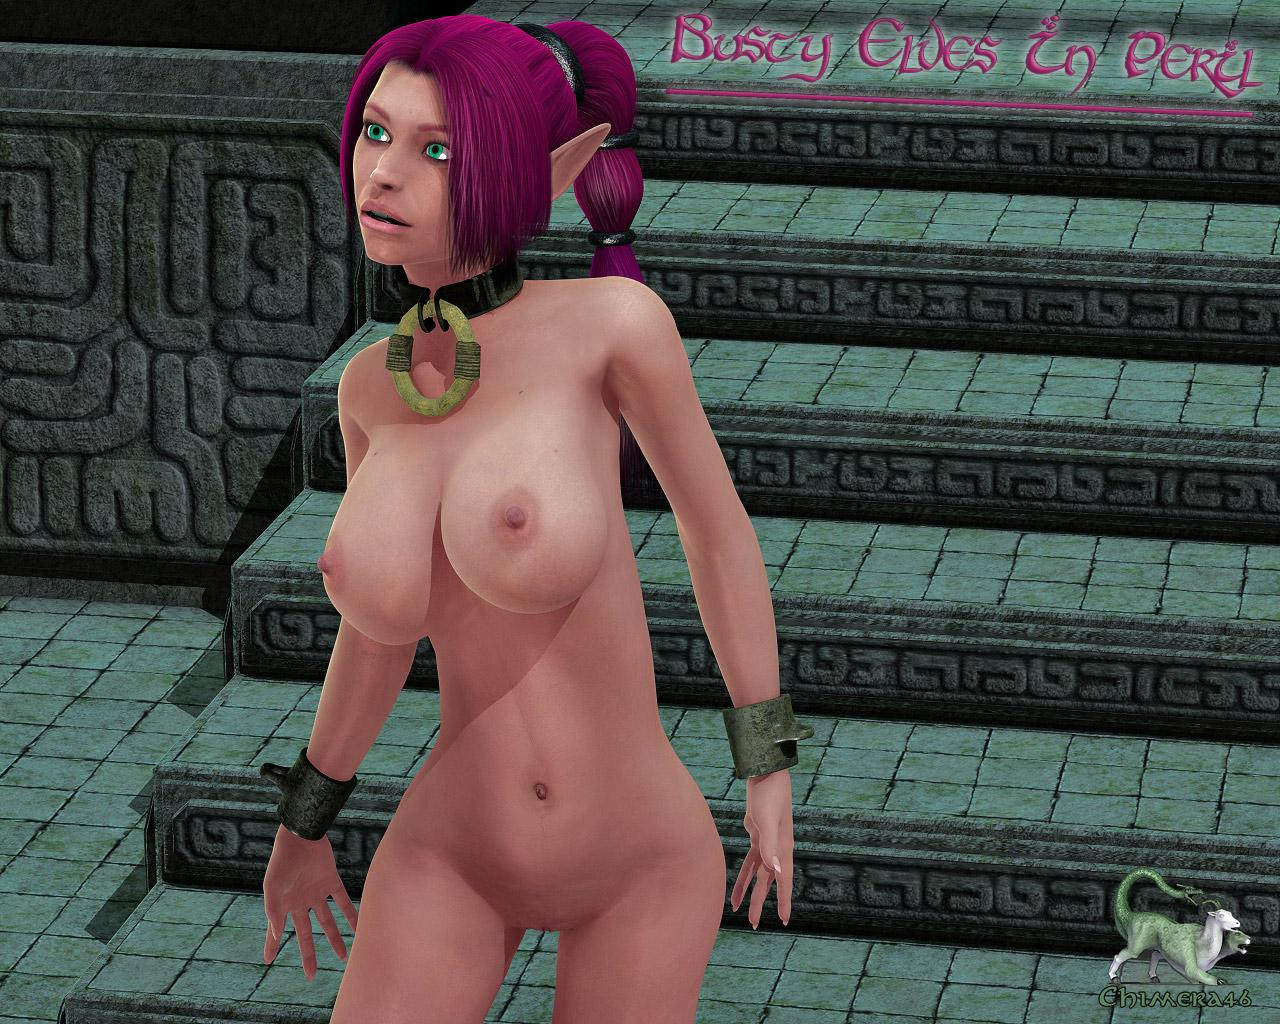 Busty Elves In Peril: Jolxea's Epiphany